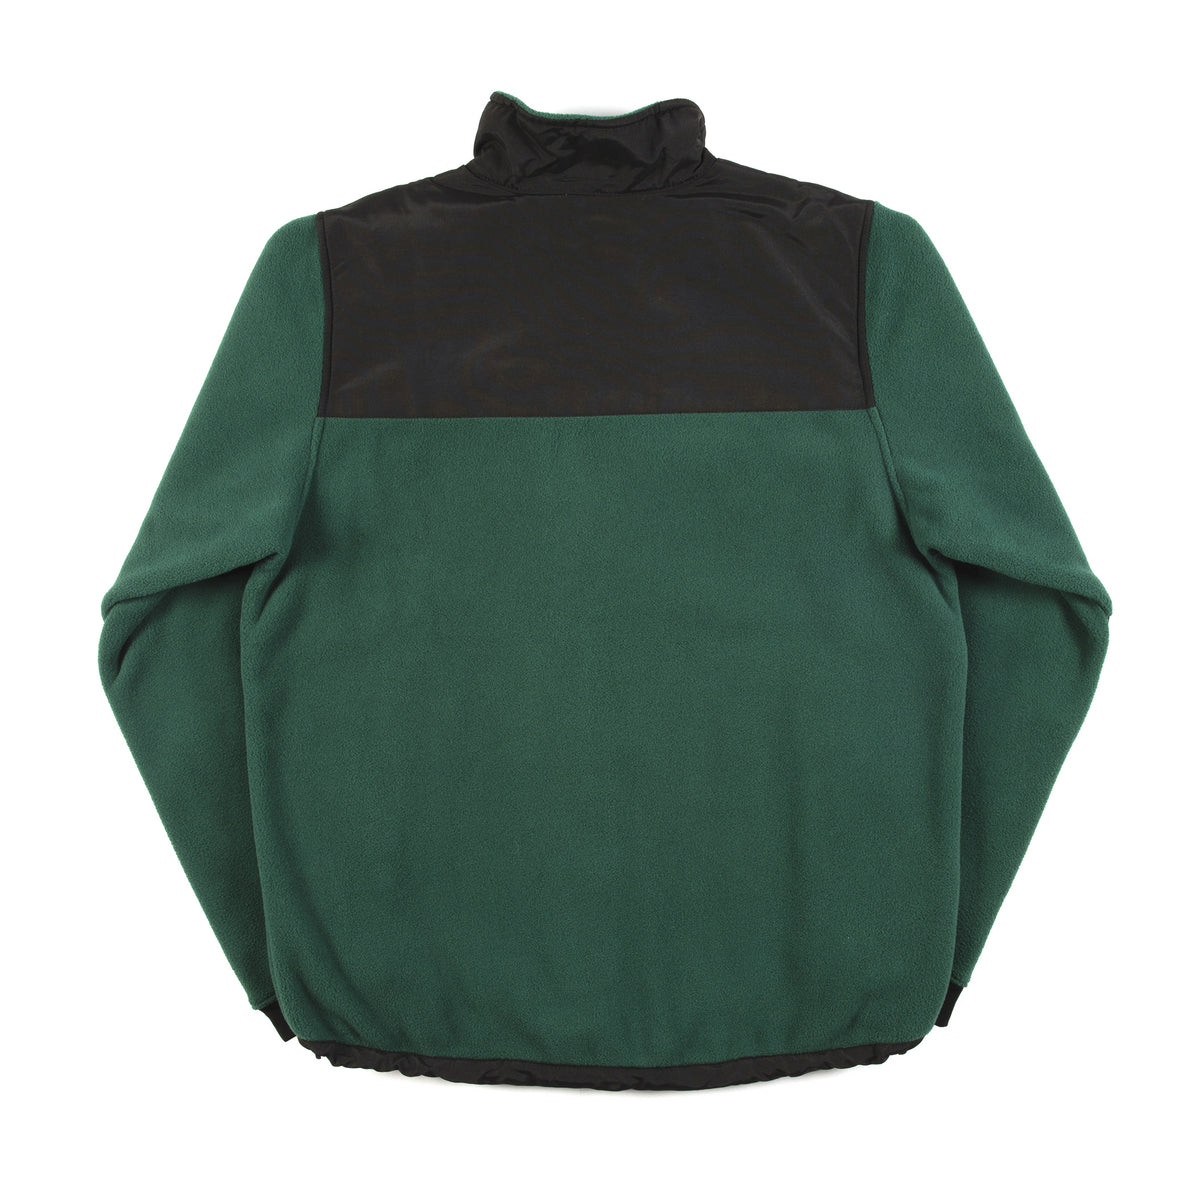 SUMMIT fleece jacket forest - RAVE skateboards